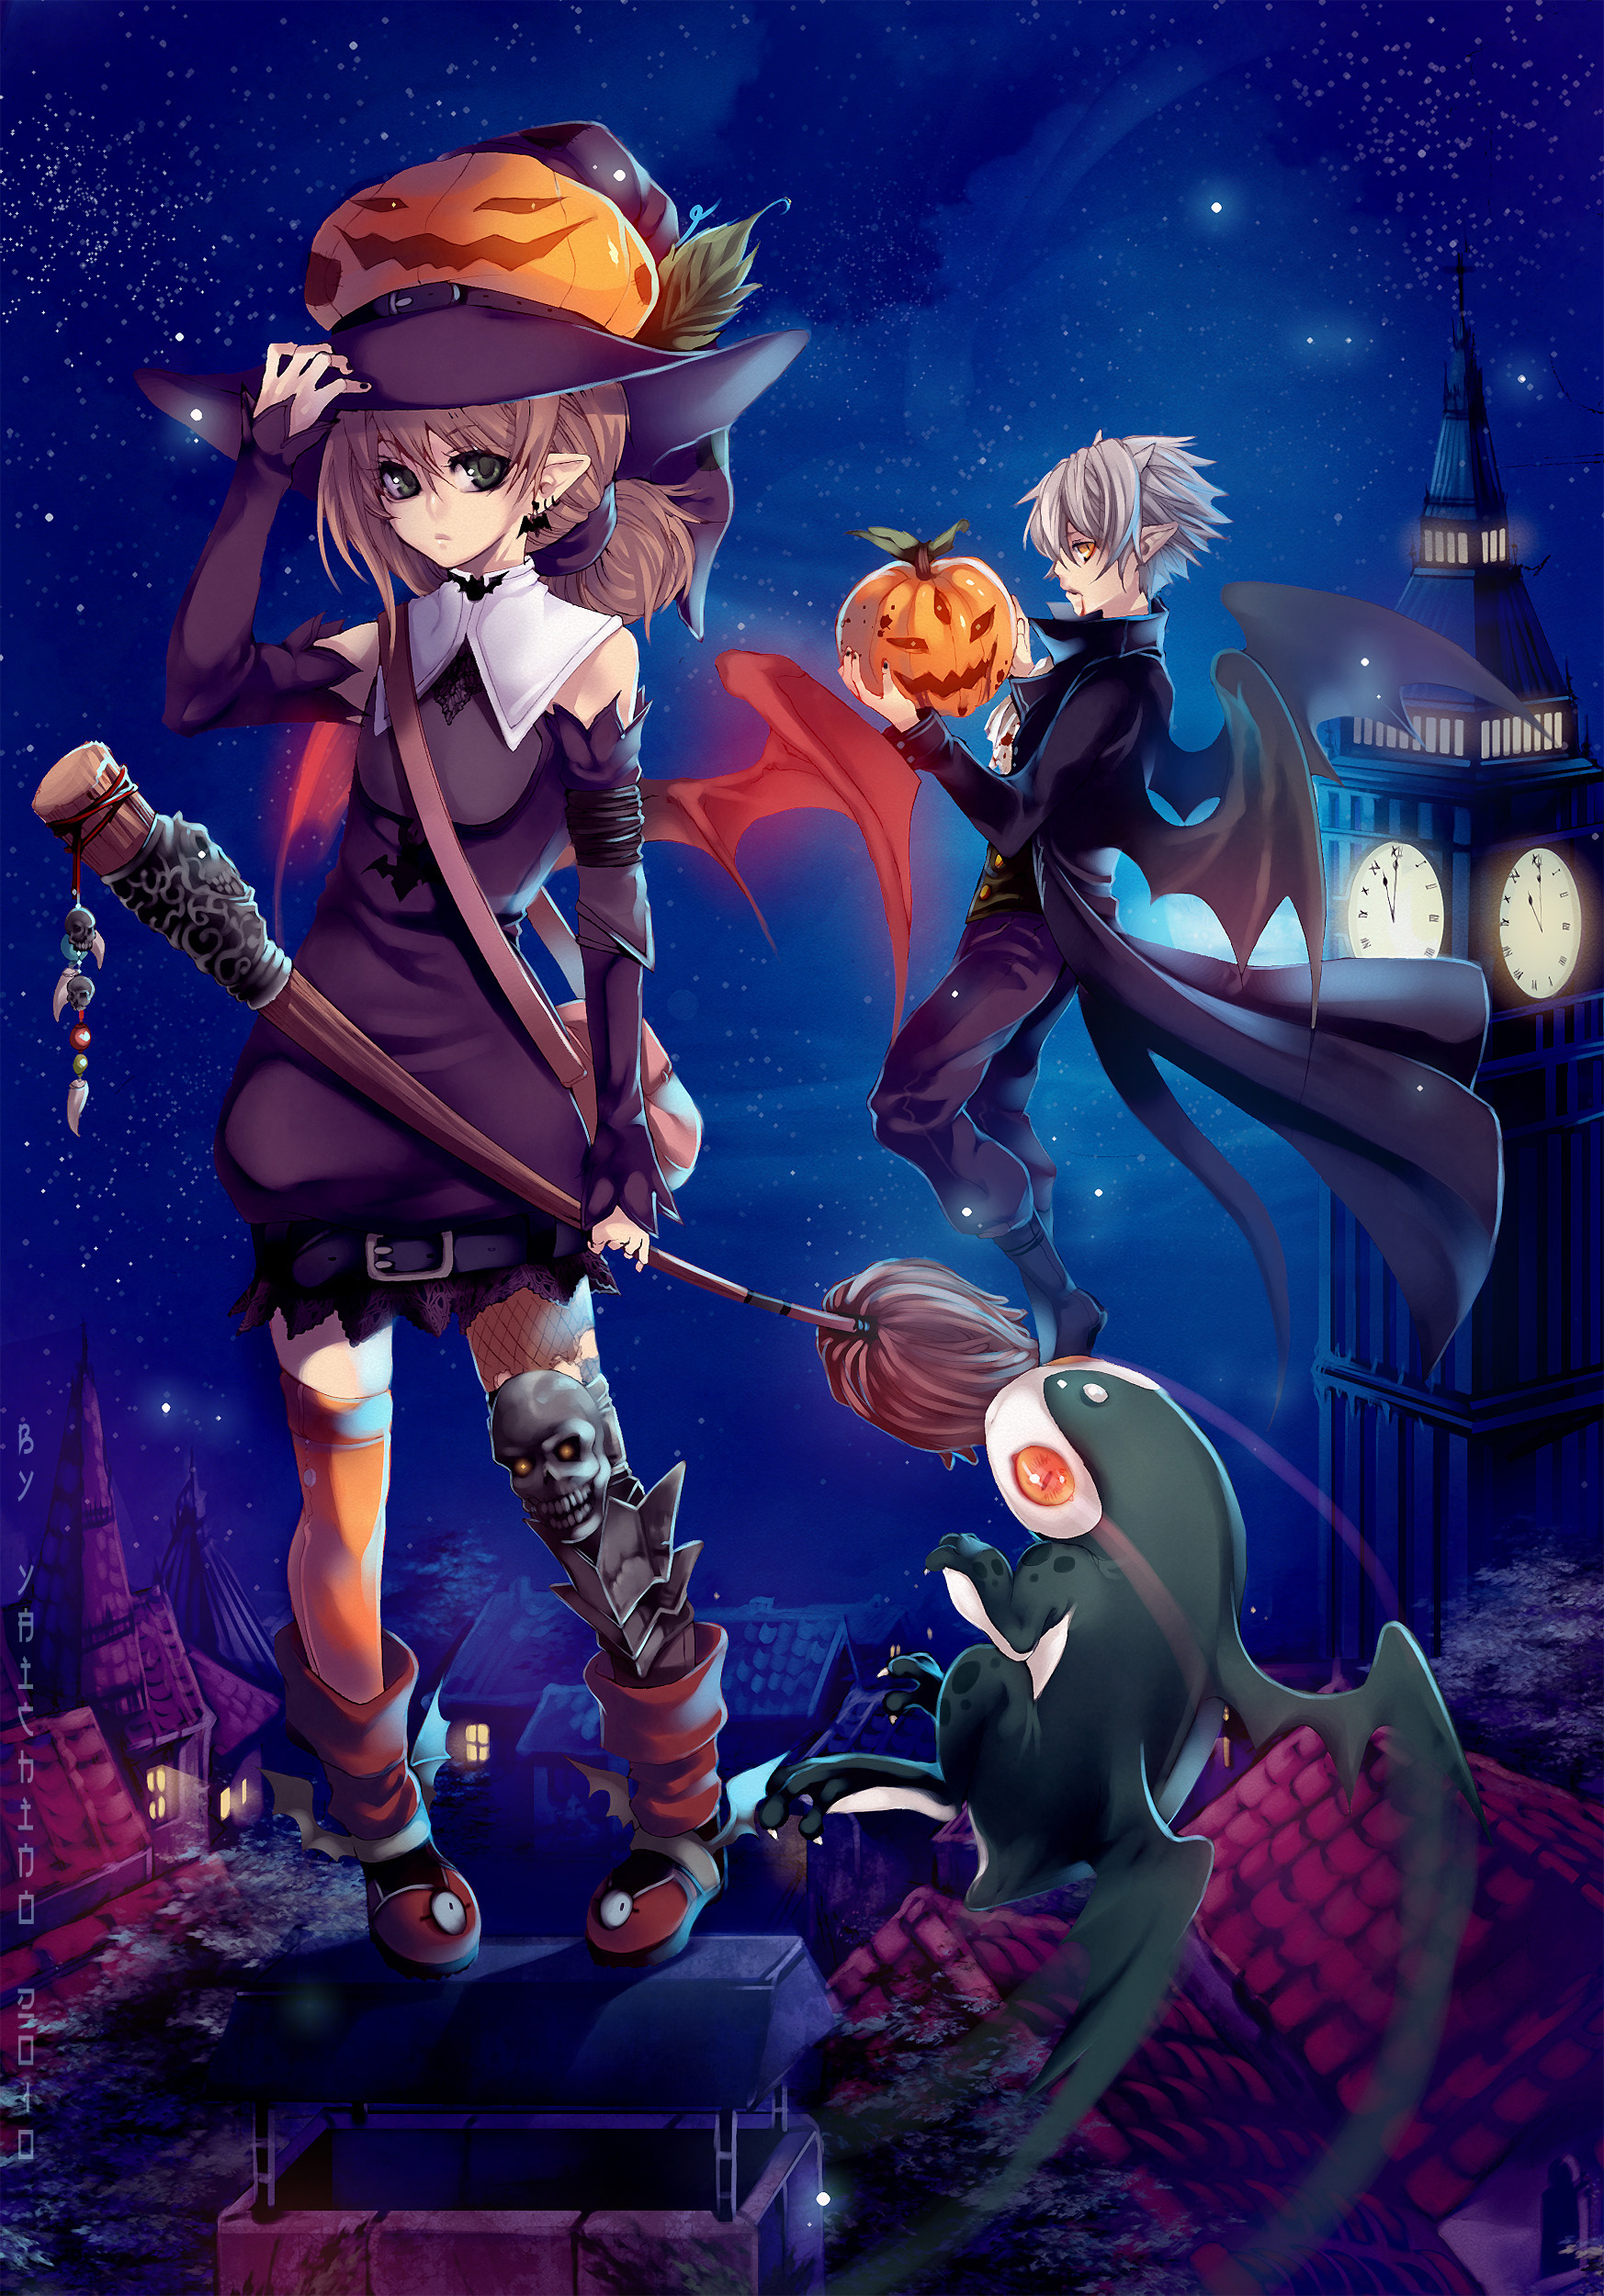 Fashion 2017 games - Wallpapers Happy Halloween Sevelina Games For Girls